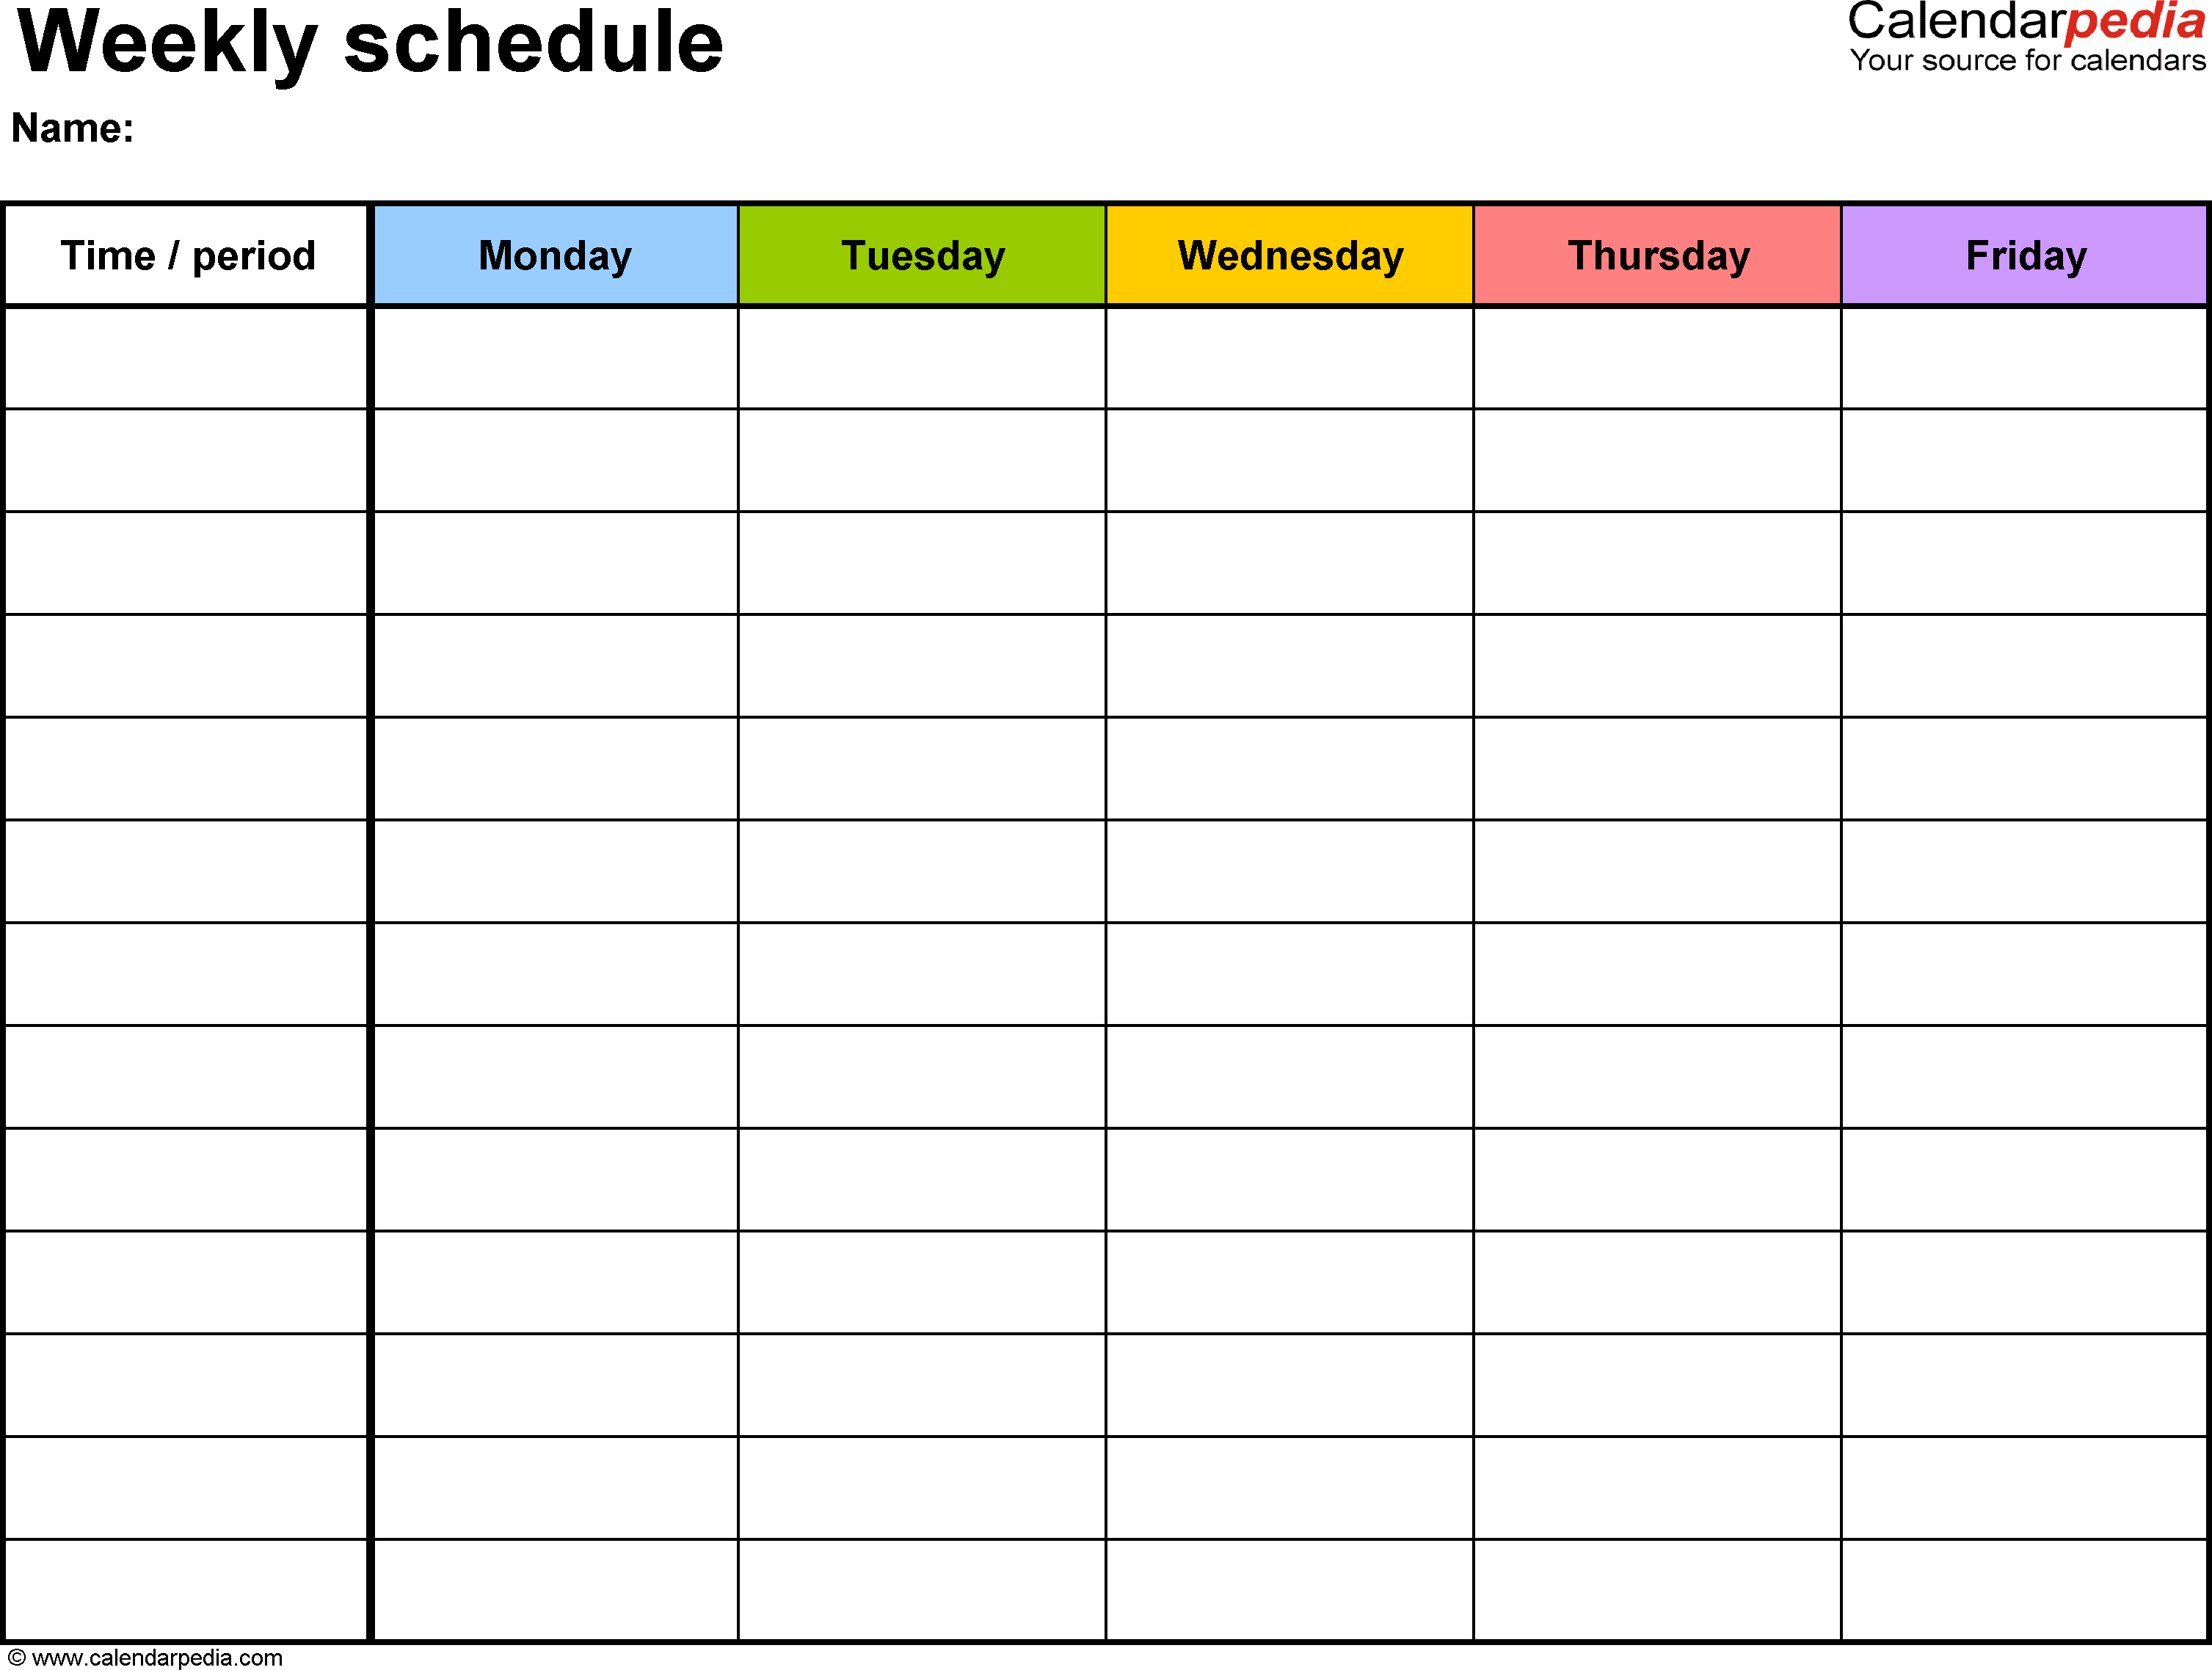 Free Weekly Schedule Templates For Word - 18 Templates within Weekly Claendat Template For